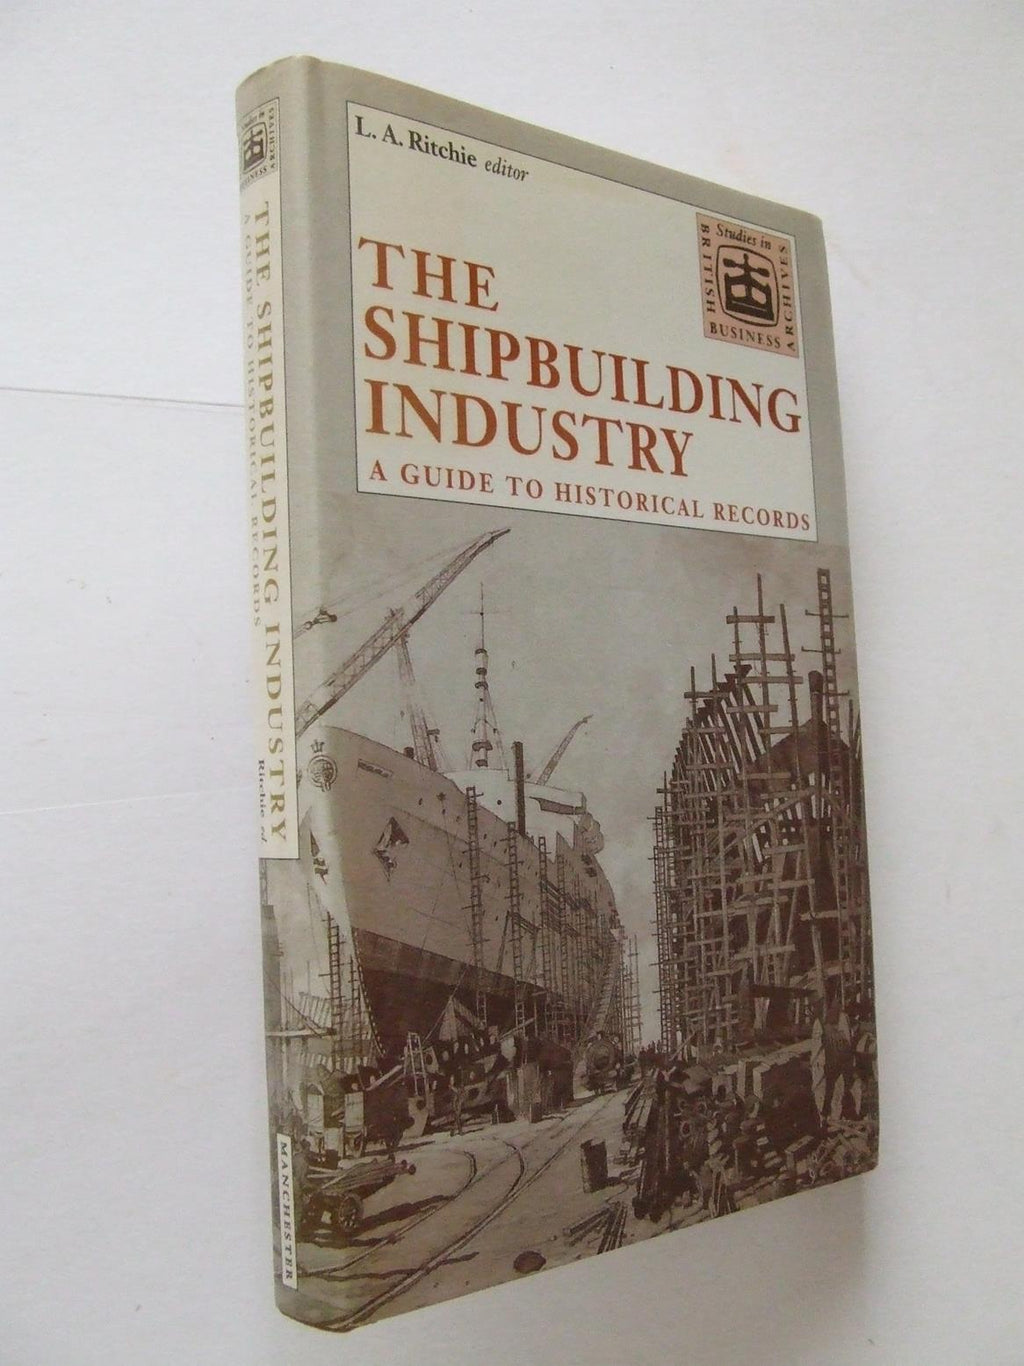 The Shipbuilding Industry, a guide to historical records